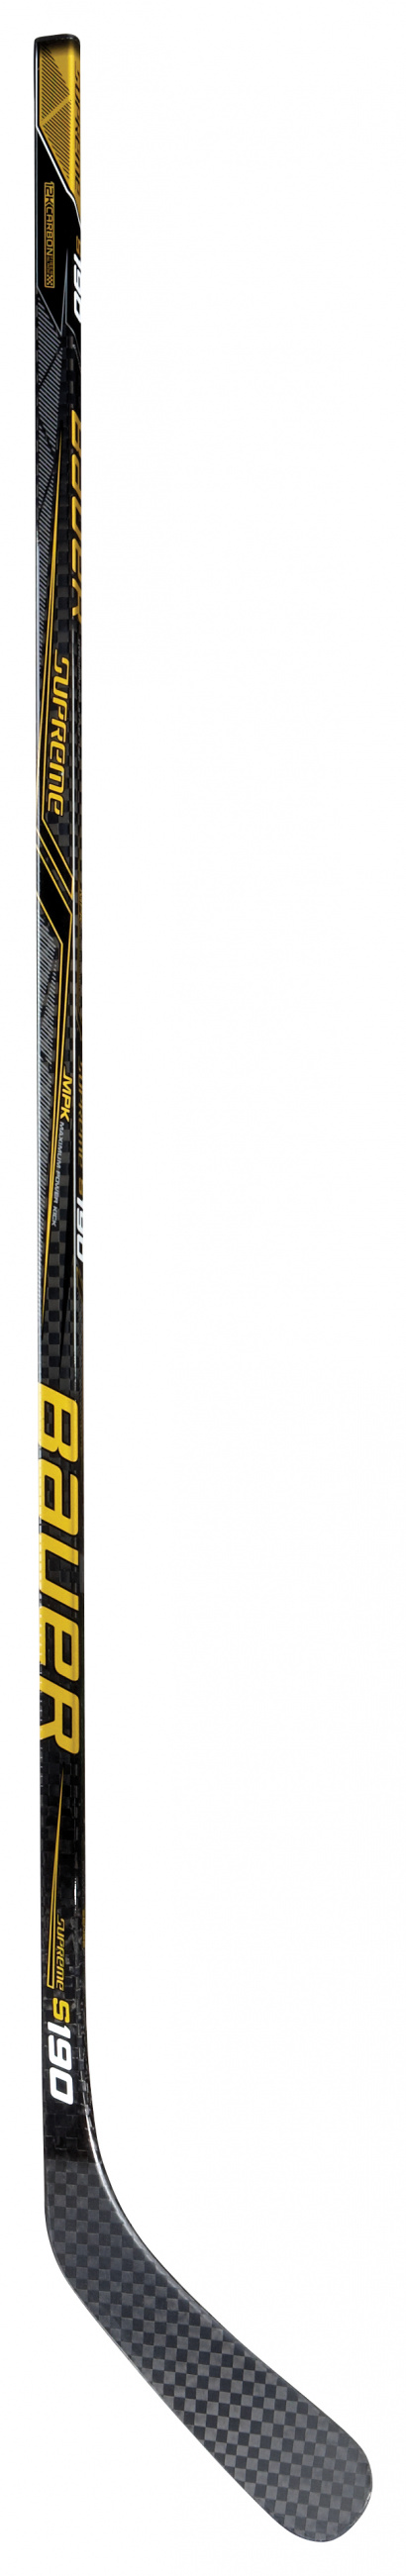 Hockey Stick Bauer SUPREME S190 Grip Sr 87